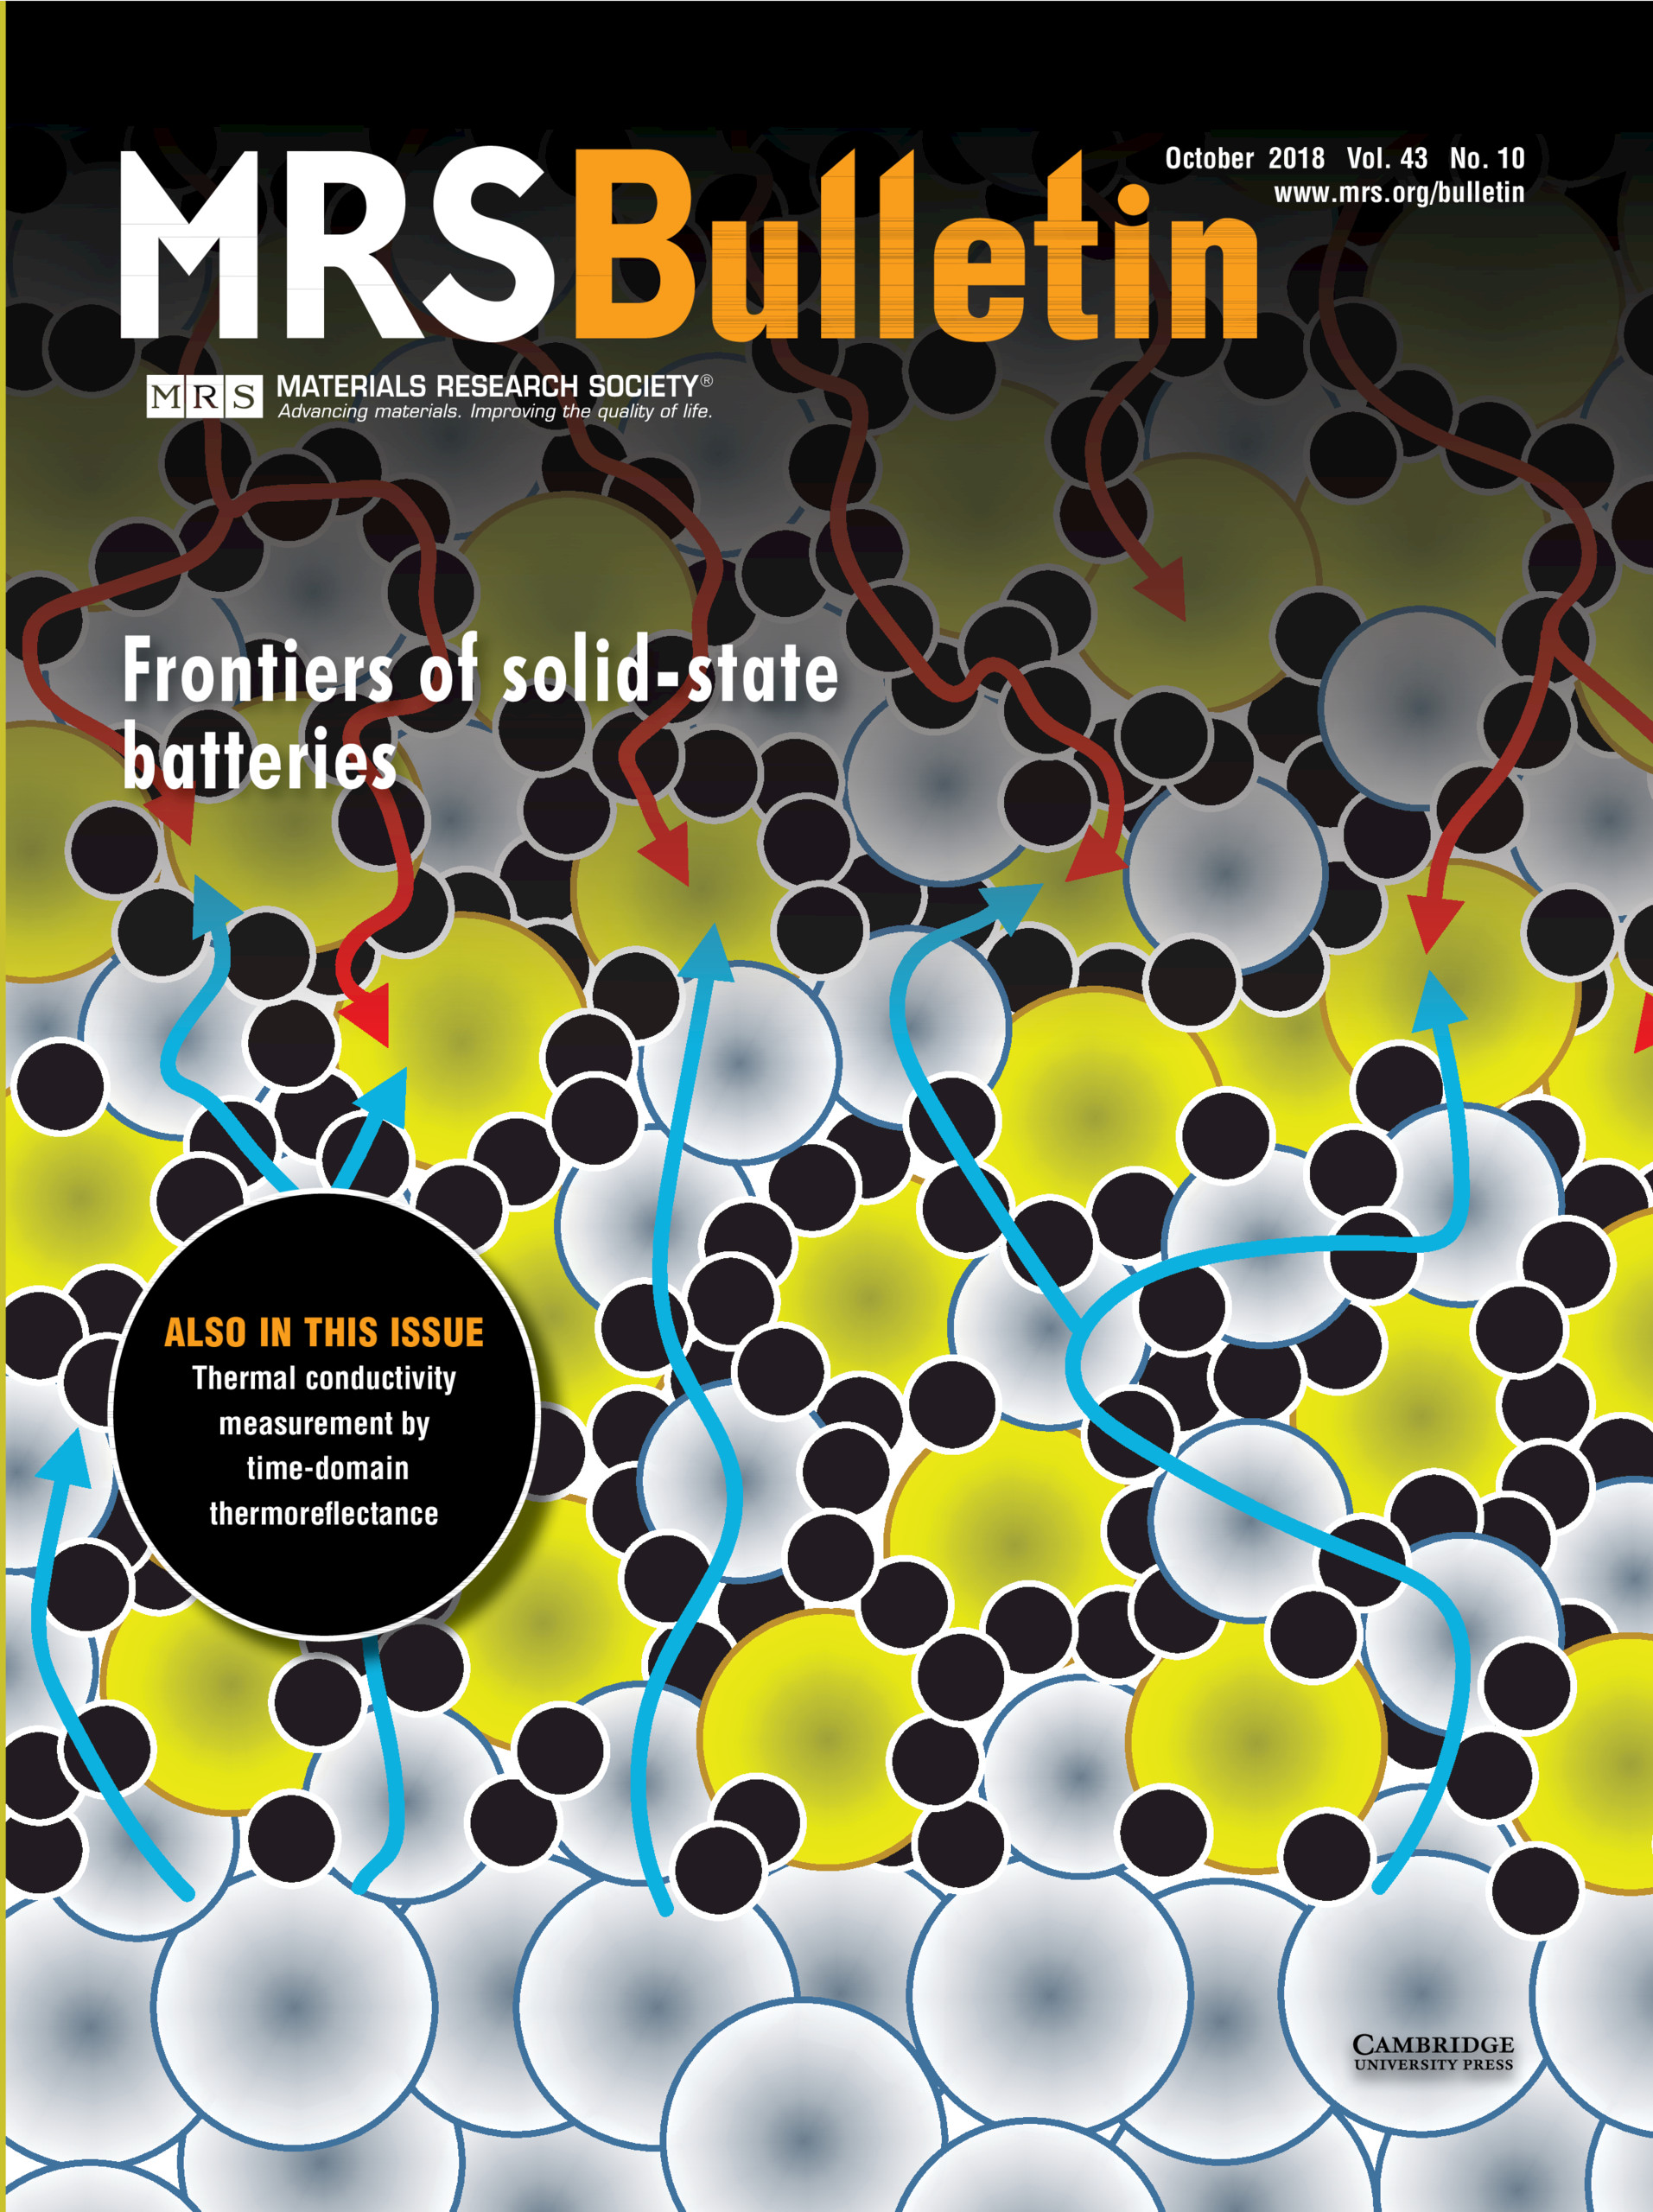 MRS Bulletin: Volume 43 - Frontiers of Solid-State Batteries